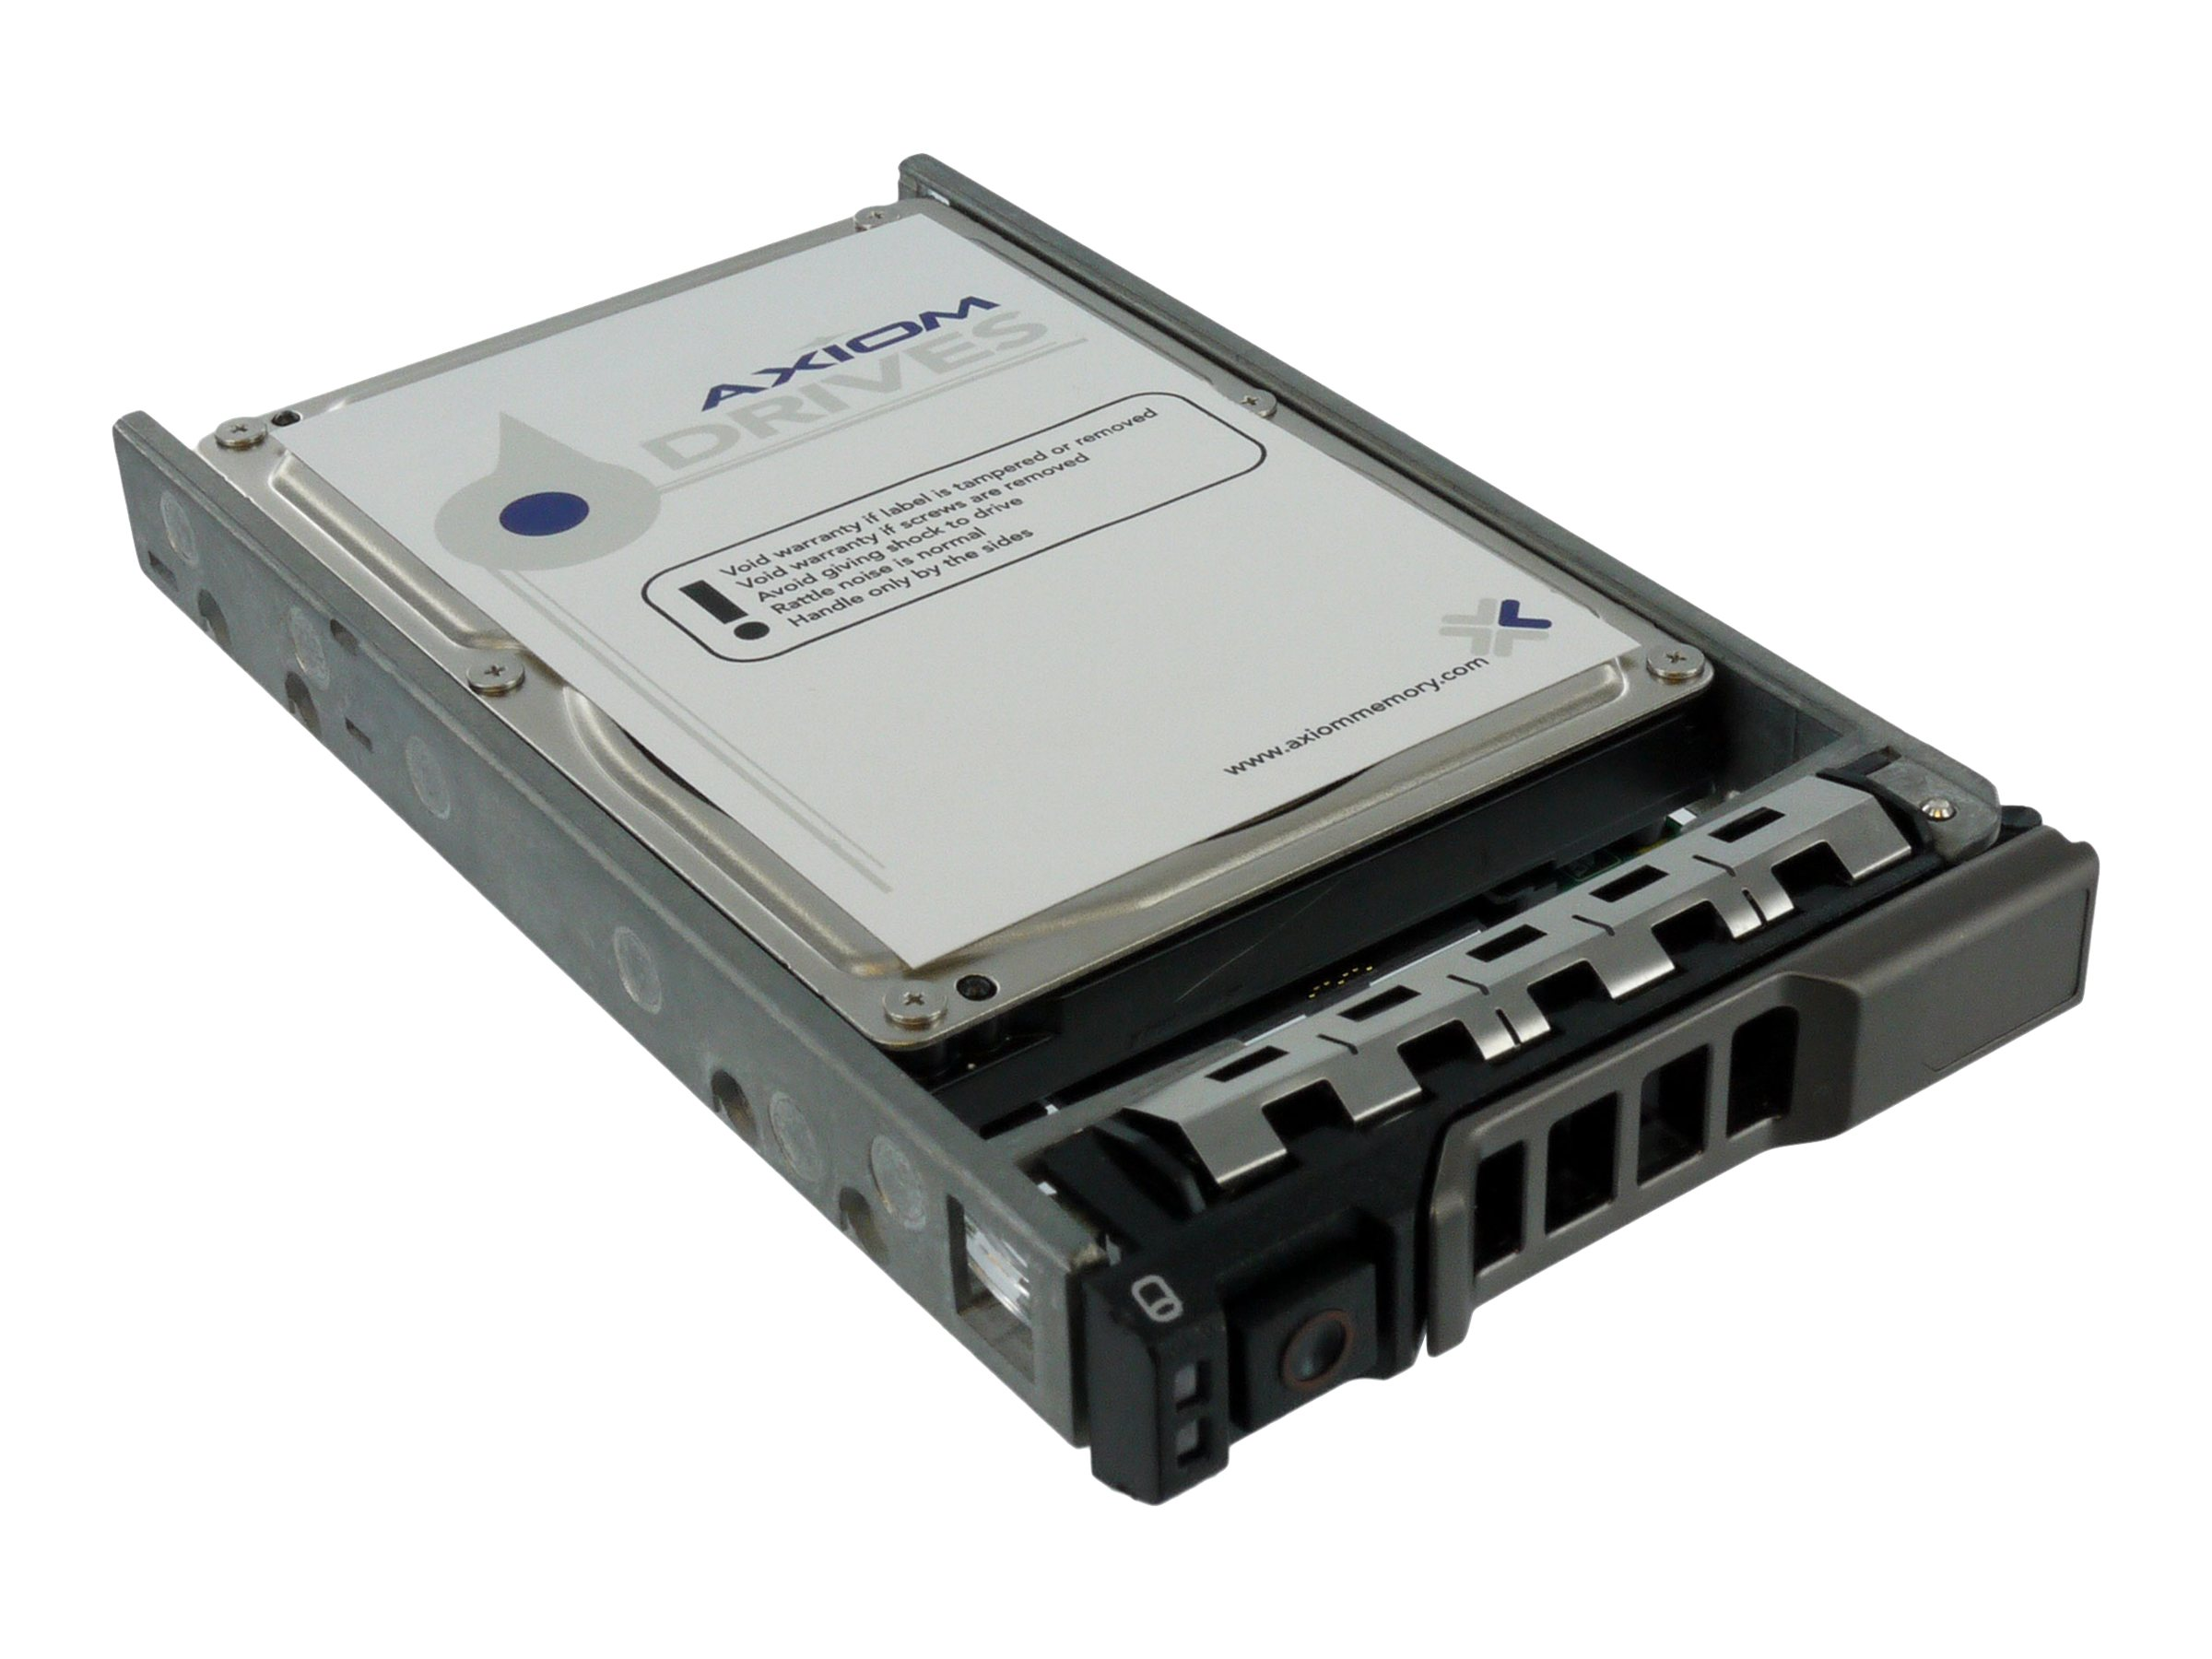 Axiom 500GB 7.2K SAS SFF 2.5 Internal Hard Drive Kit for Select Dell PowerEdge & PowerVault Servers, AXD-PE50072G, 13488973, Hard Drives - Internal